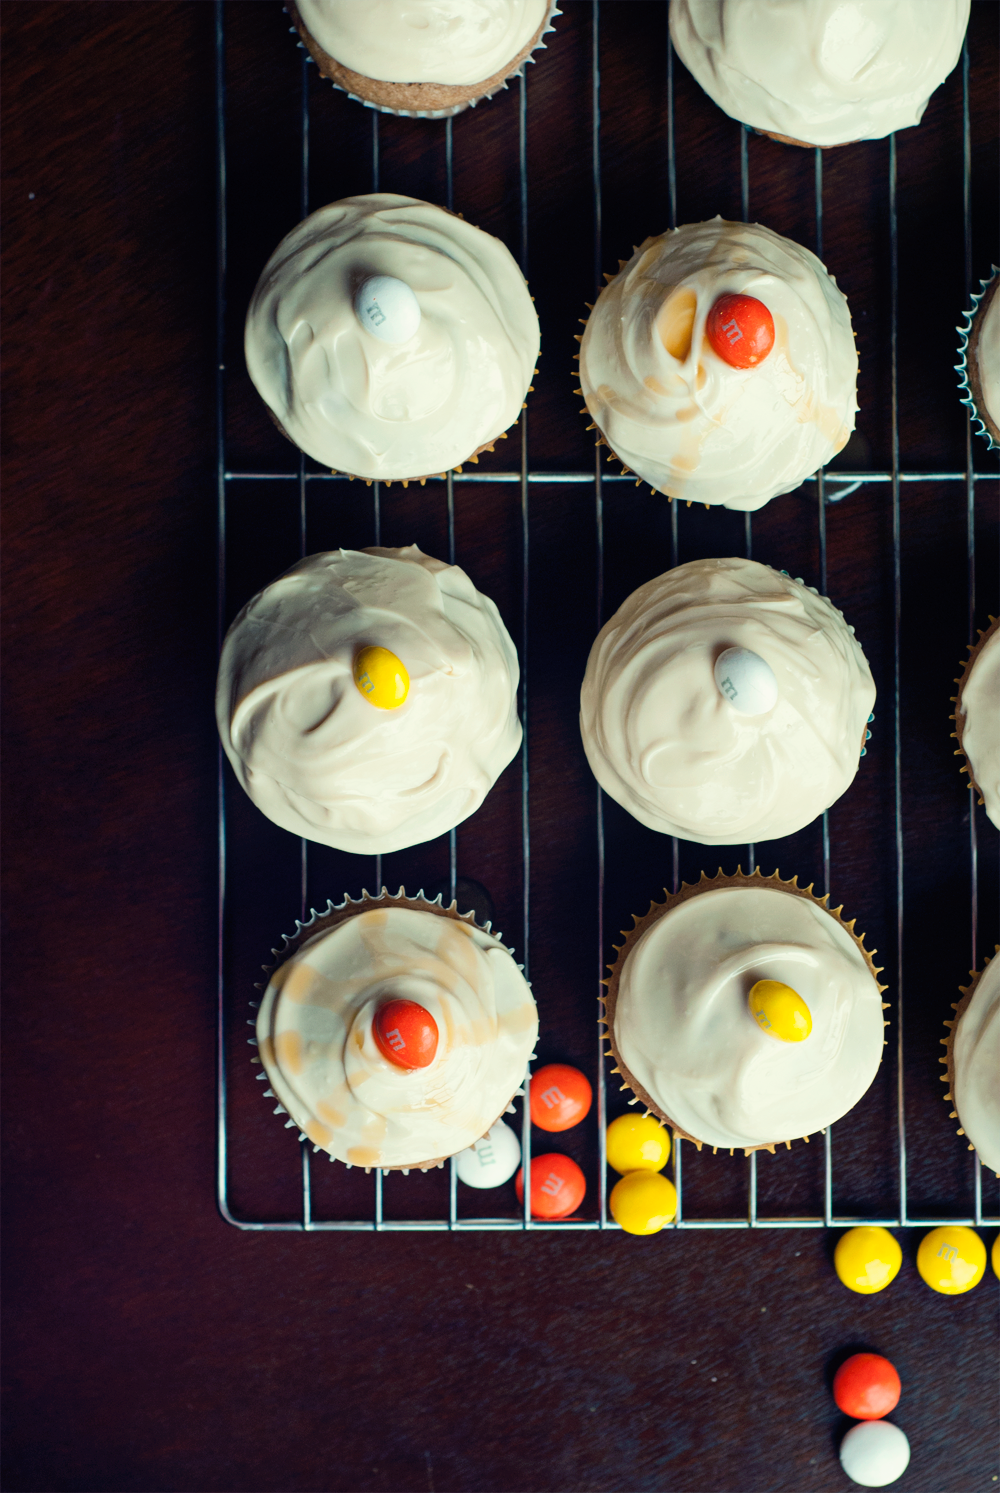 Overhead view of a wire rack, set to the right and top, with six spiced apple cupcakes fully visible, and another five running off the top and right side of the image. Cupcakes are topped with caramel cream cheese frosting and a couple have a caramel drizzle. All are topped with M&Ms and loose M&Ms are scattered to the bottom of the image and below the wire rack.